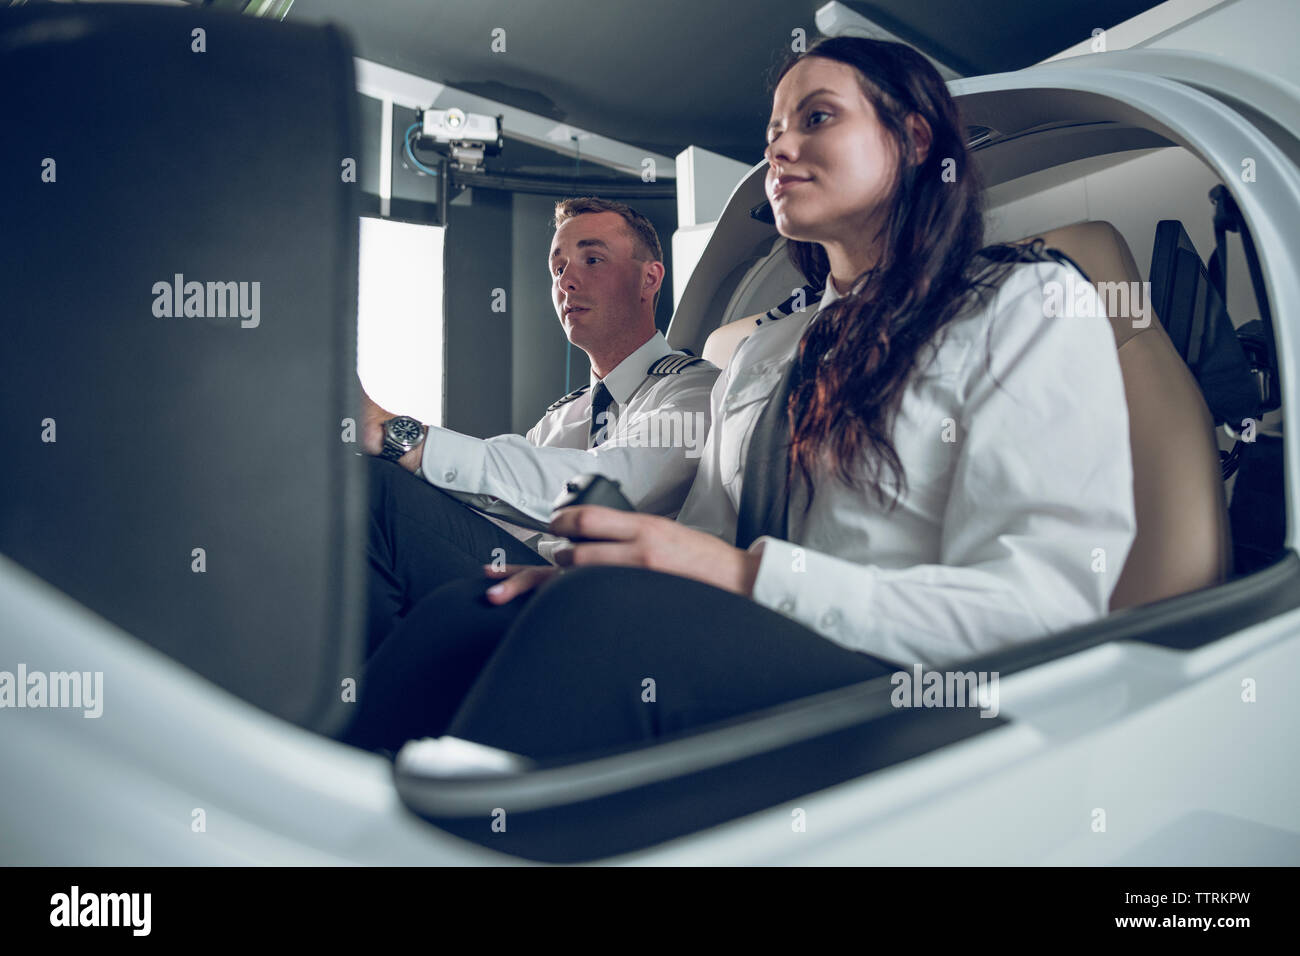 Low angle view of male pilot guiding female trainee in flying flight simulator - Stock Image